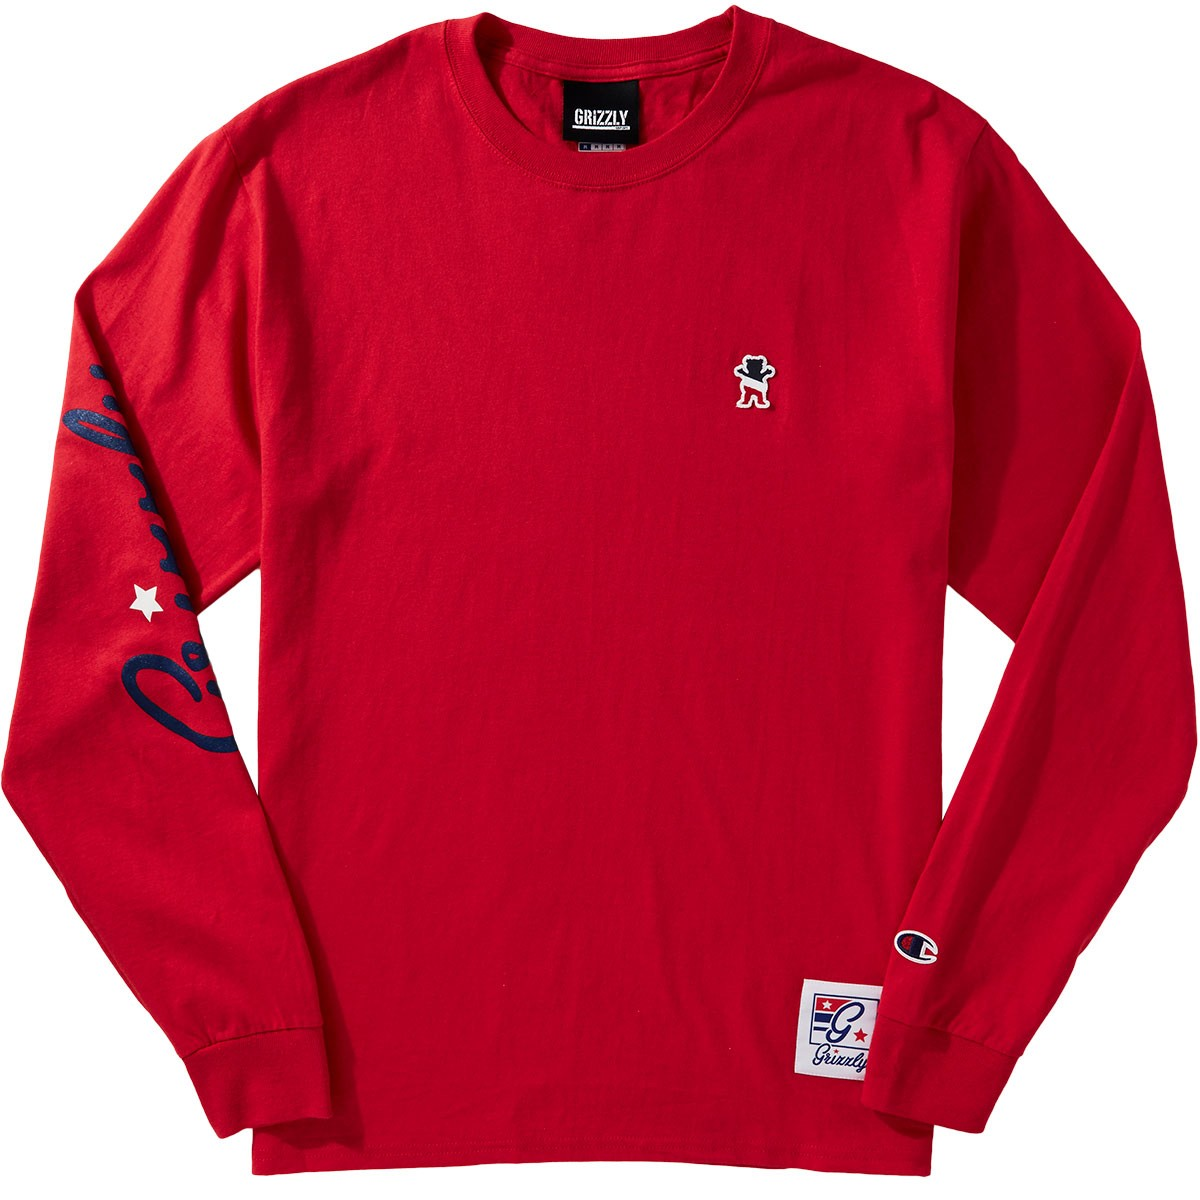 57bdf958a7db Grizzly X Champion Behind The Arc Longsleeve T-Shirt - Red